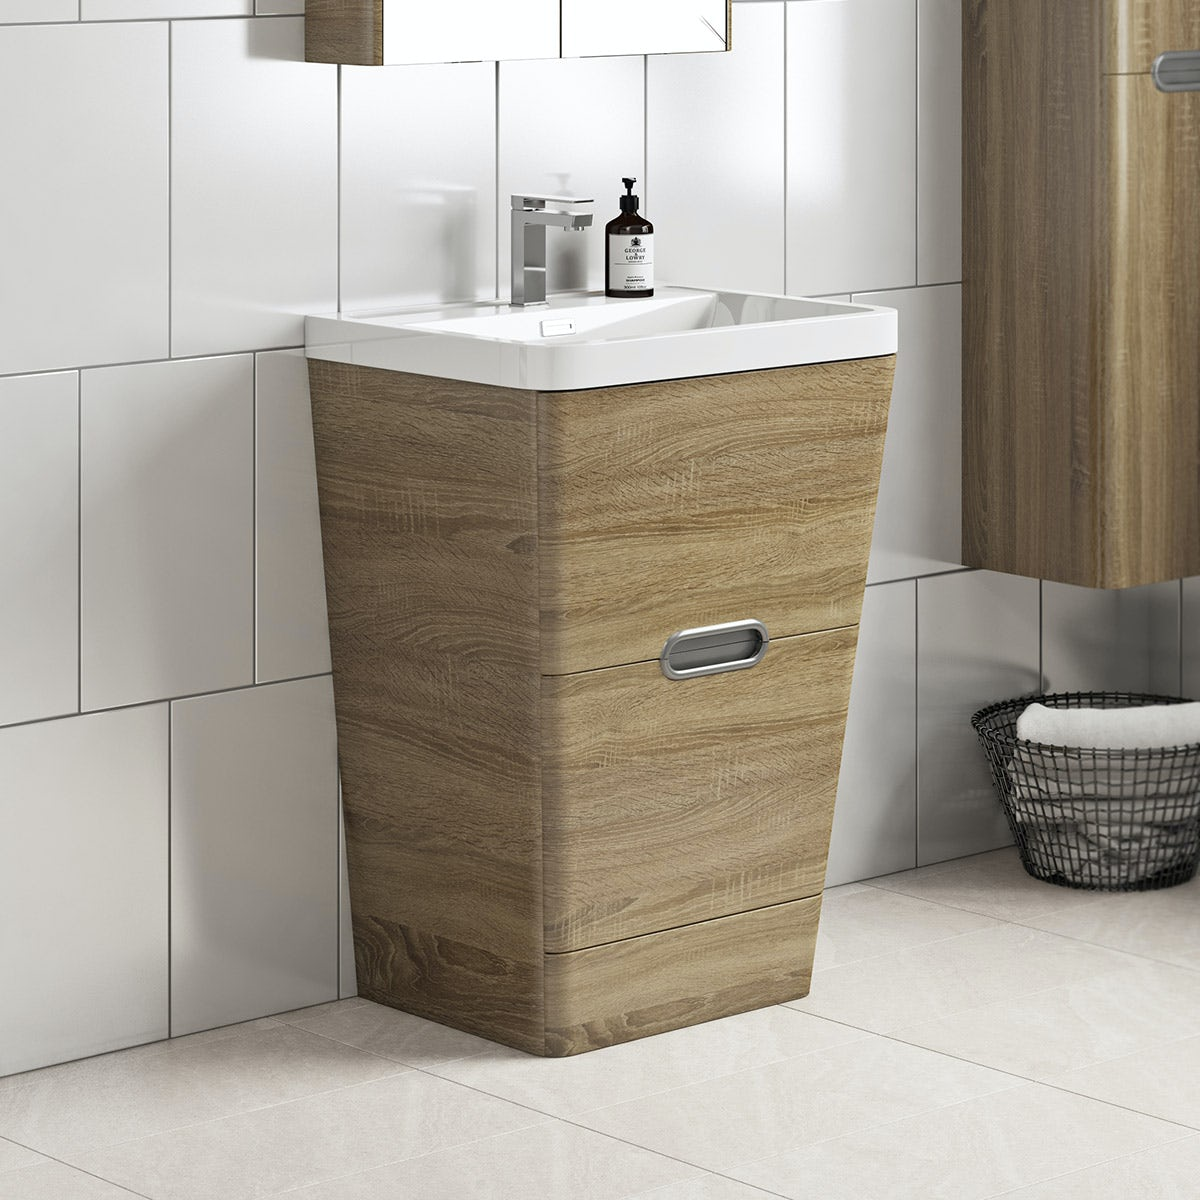 Mode Sherwood oak floor standing vanity unit and resin basin 600mm